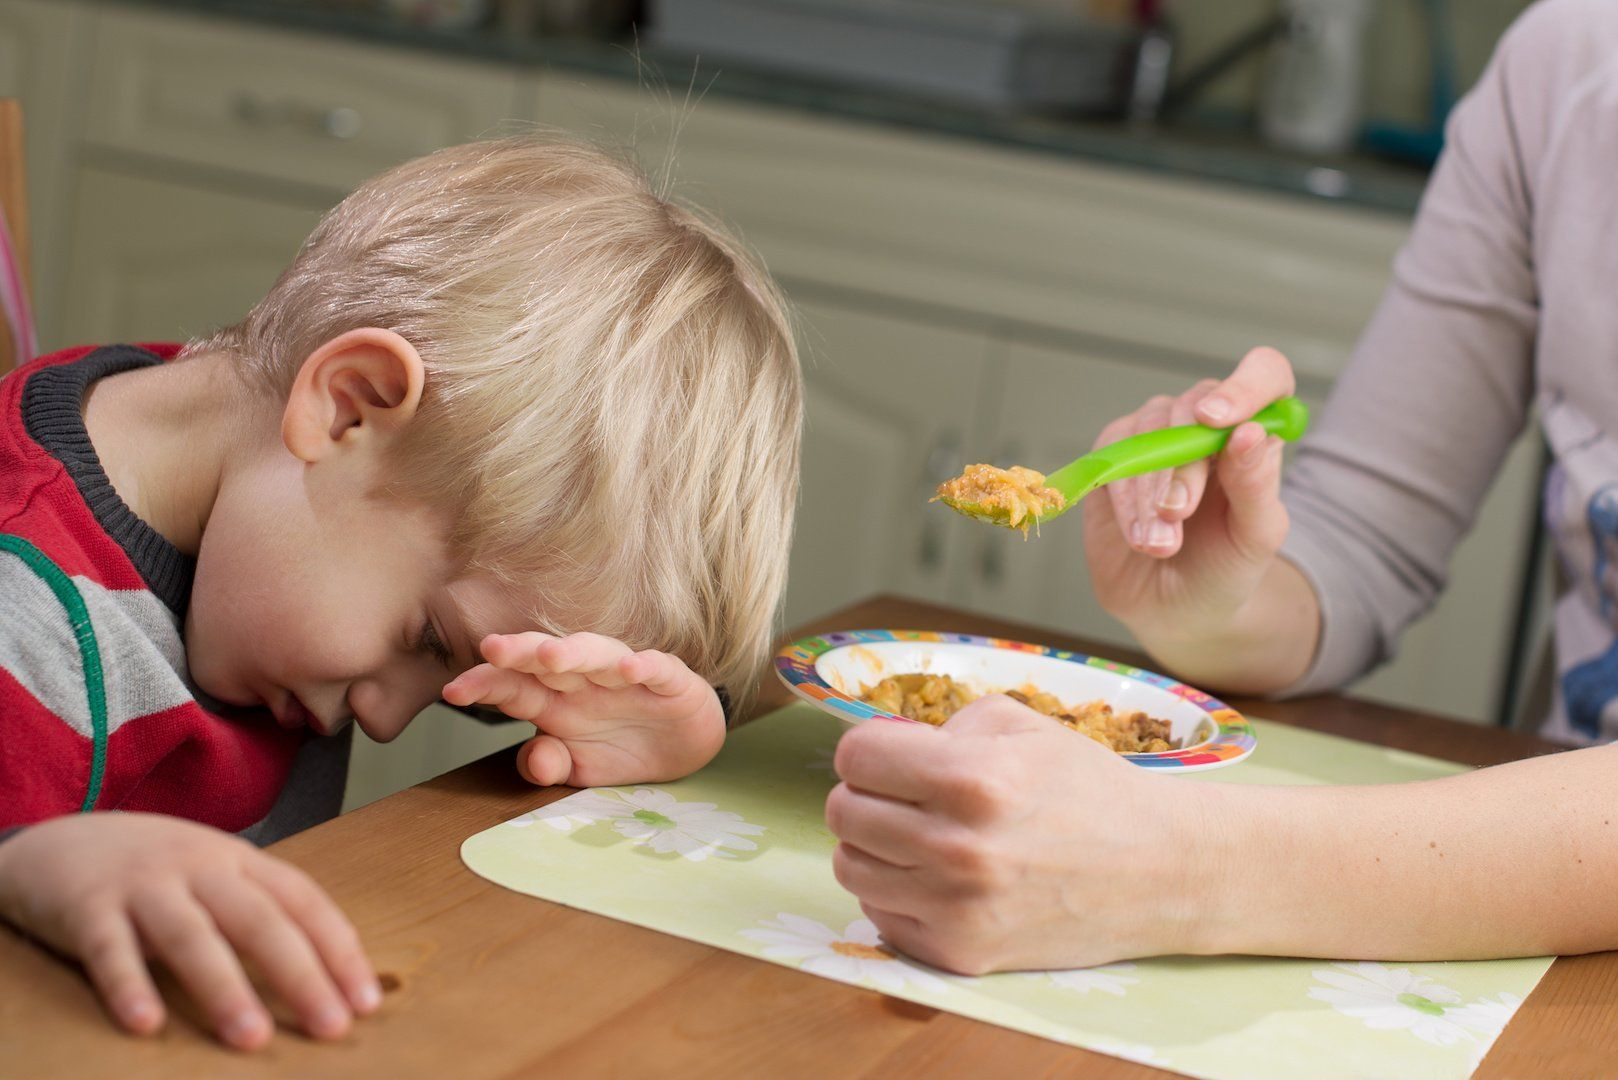 Parents of picky eaters need education and understanding